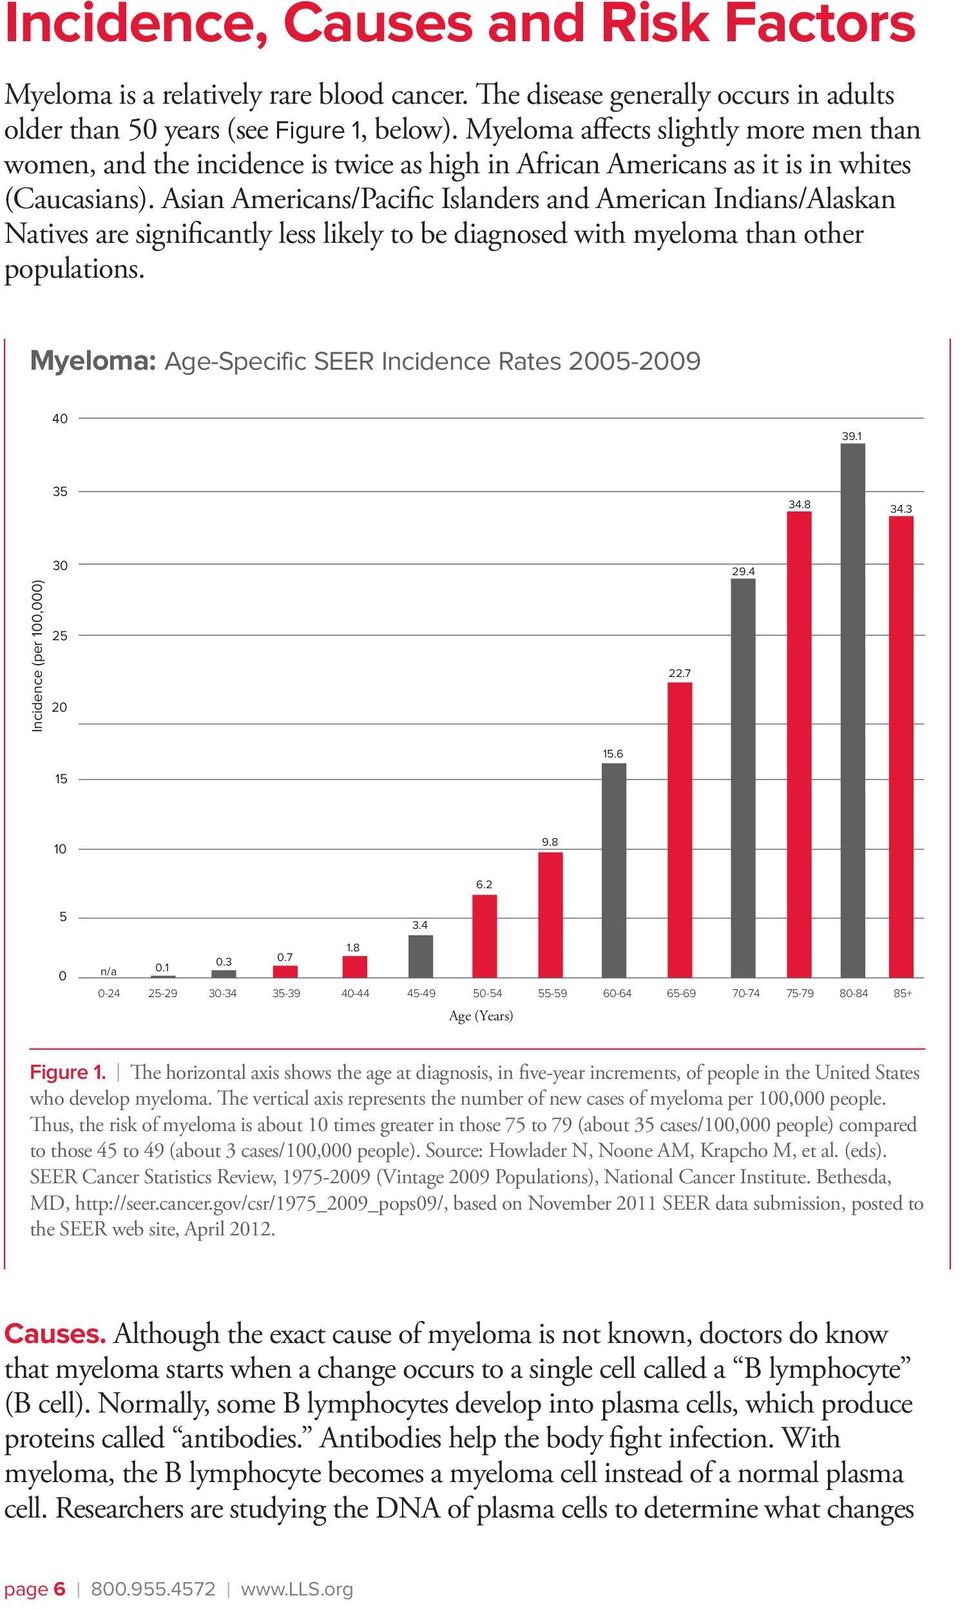 Asian Americans/Pacific Islanders and American Indians/Alaskan Natives are significantly less likely to be diagnosed with myeloma than other populations.